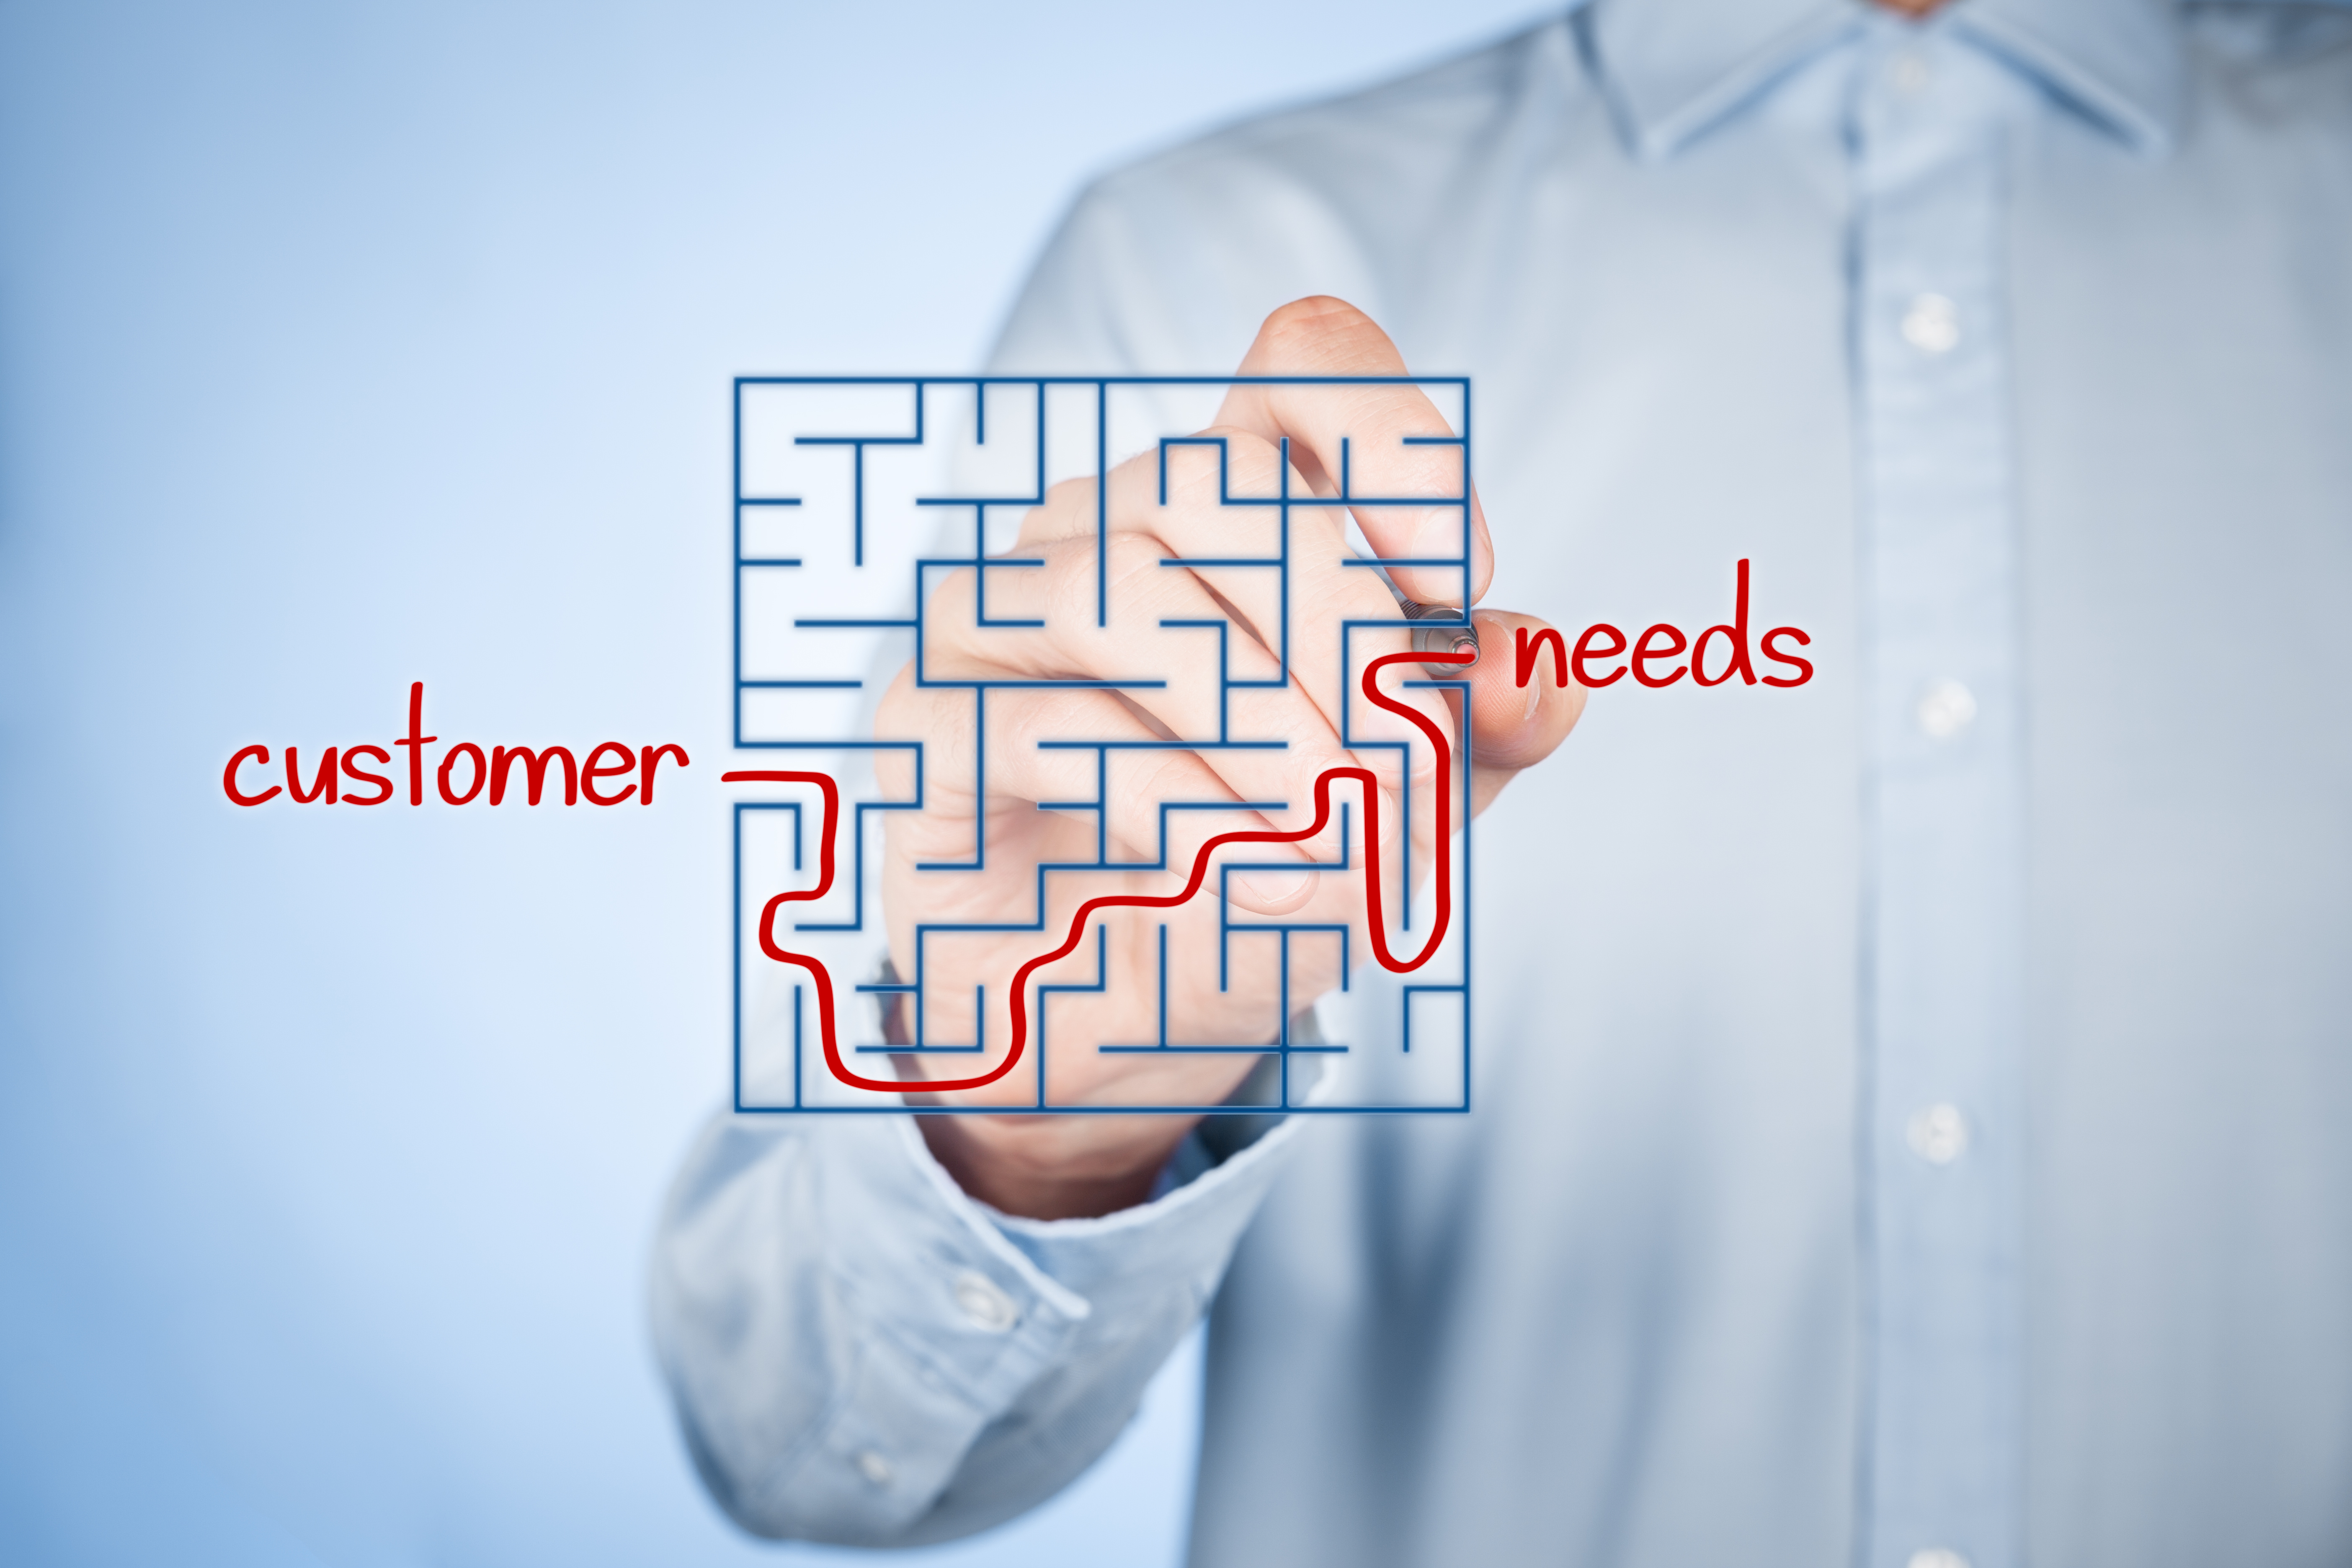 customer needs We need to ensure that we always deliver on our promise to the customer.